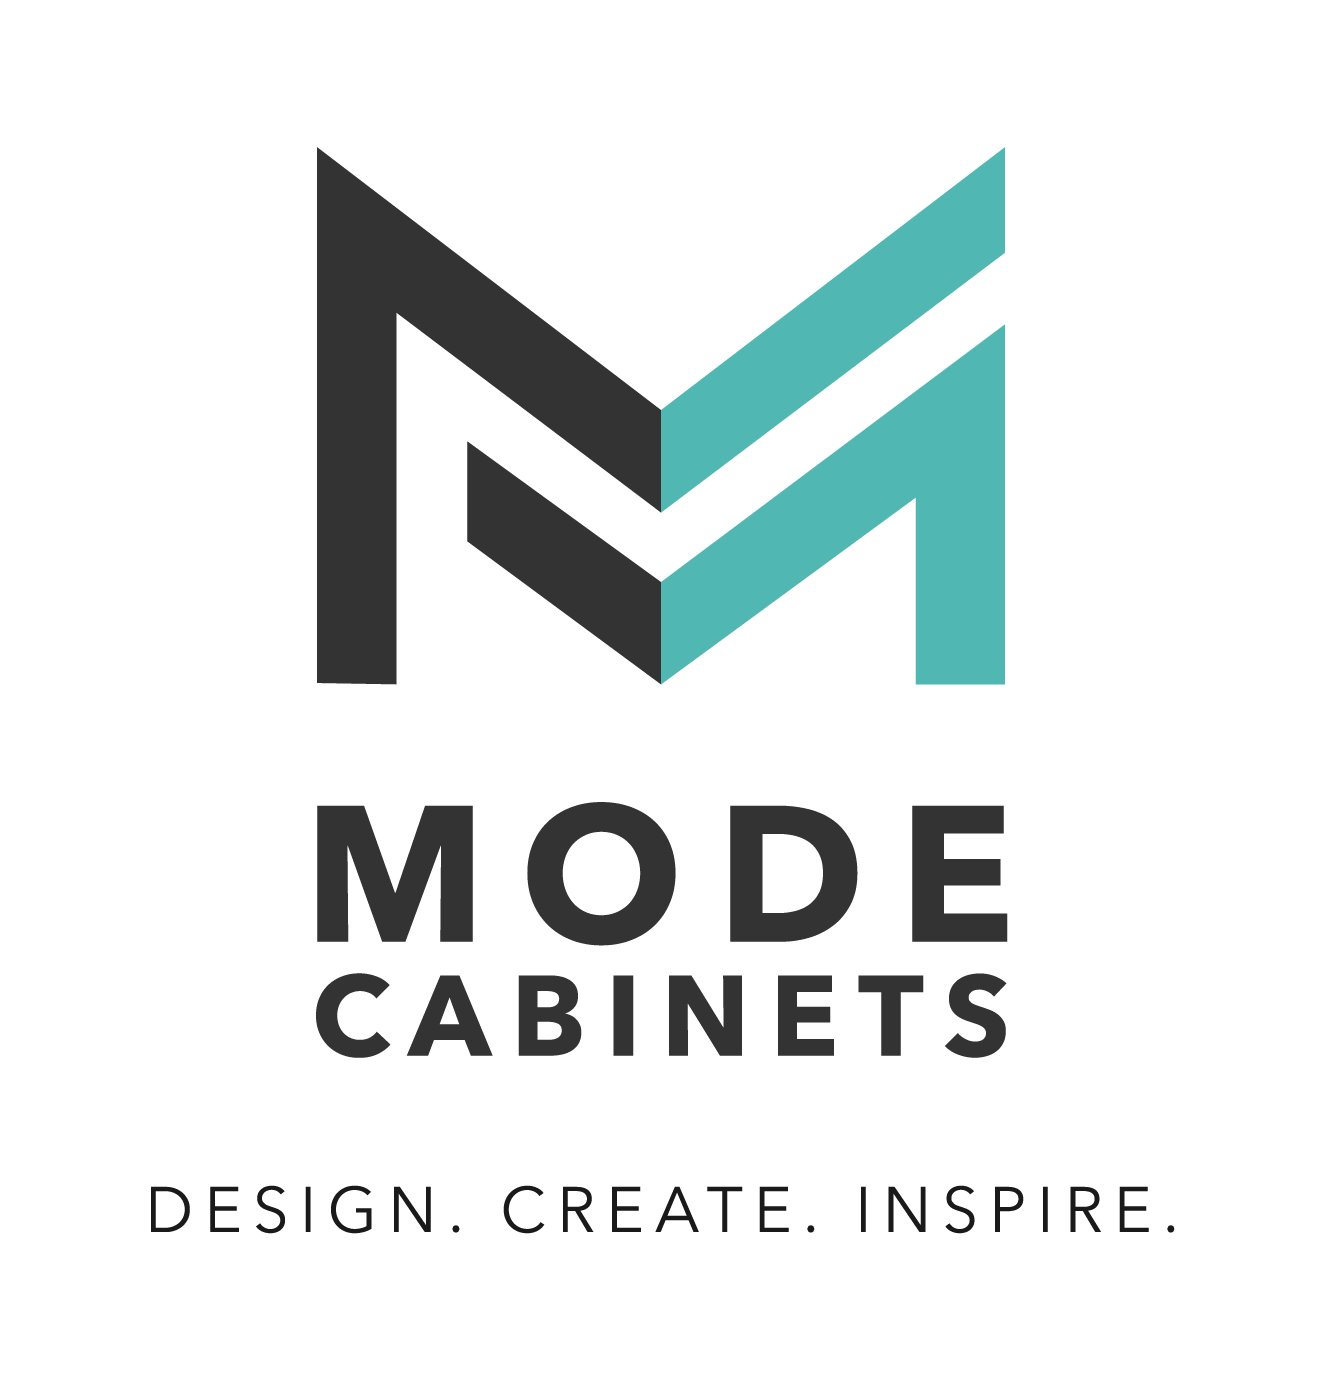 Mode Cabinets